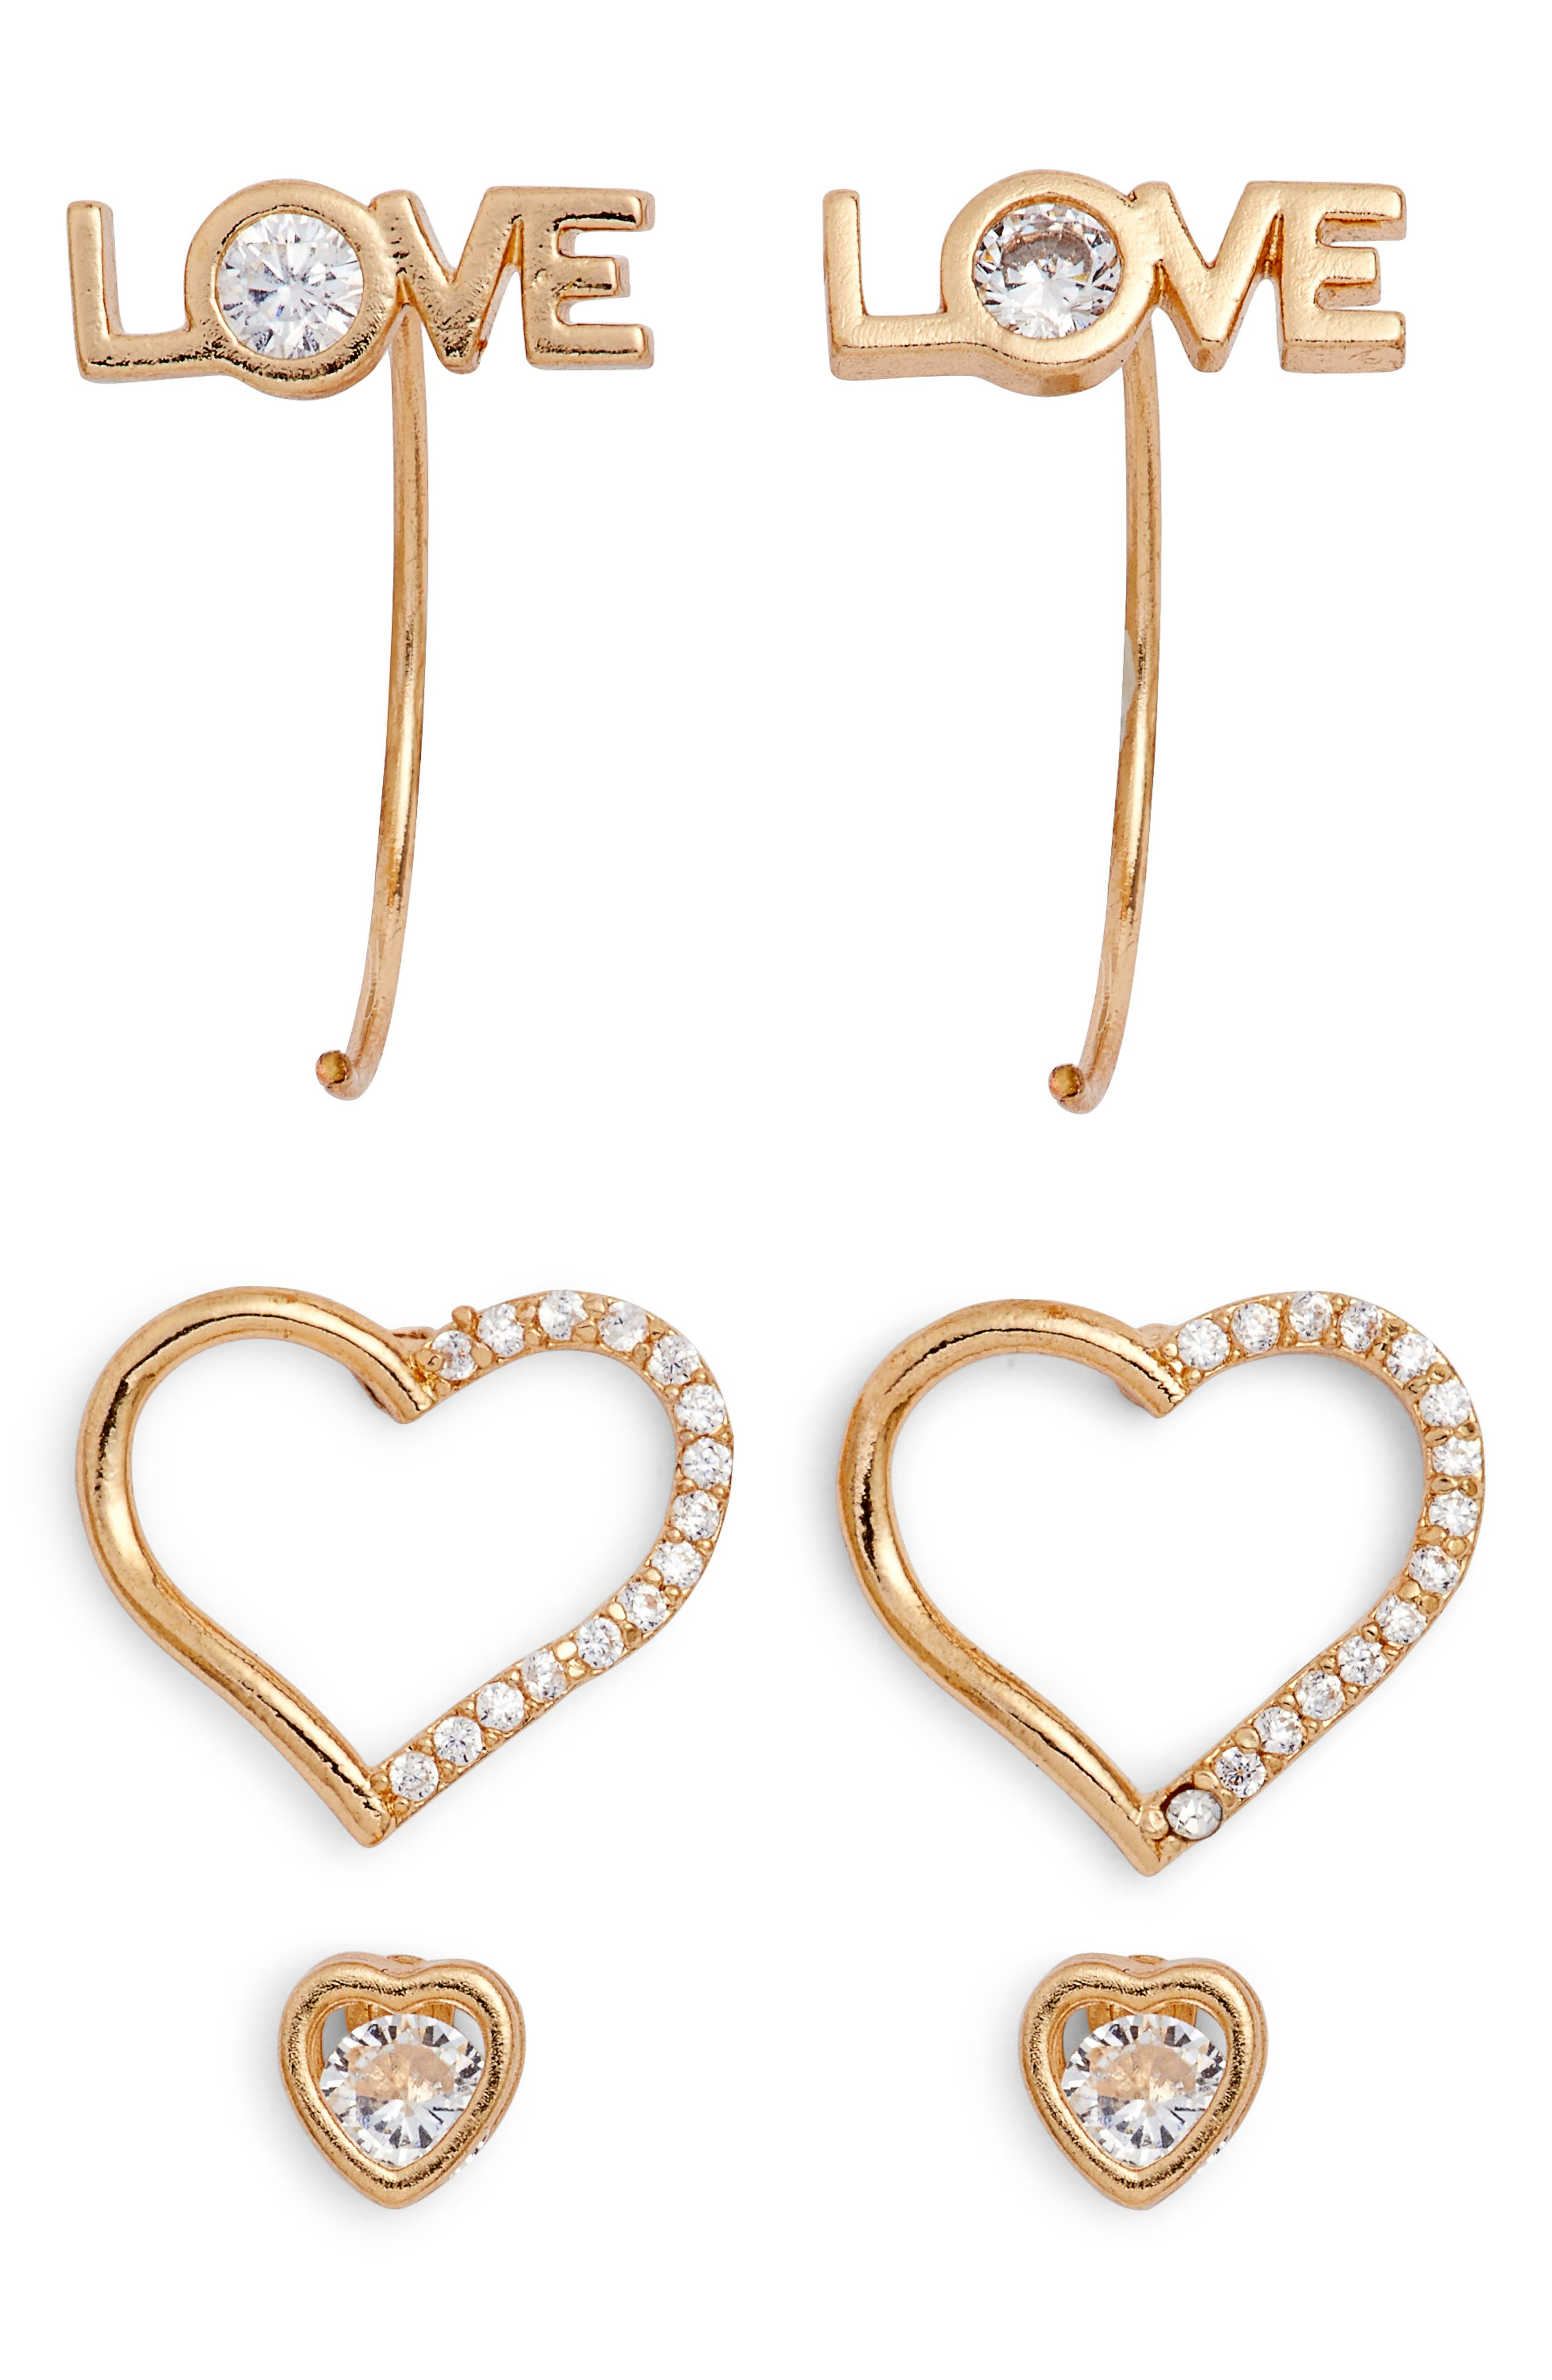 Love 3-Pack Assorted Earrings,                             Main thumbnail 1, color,                             710